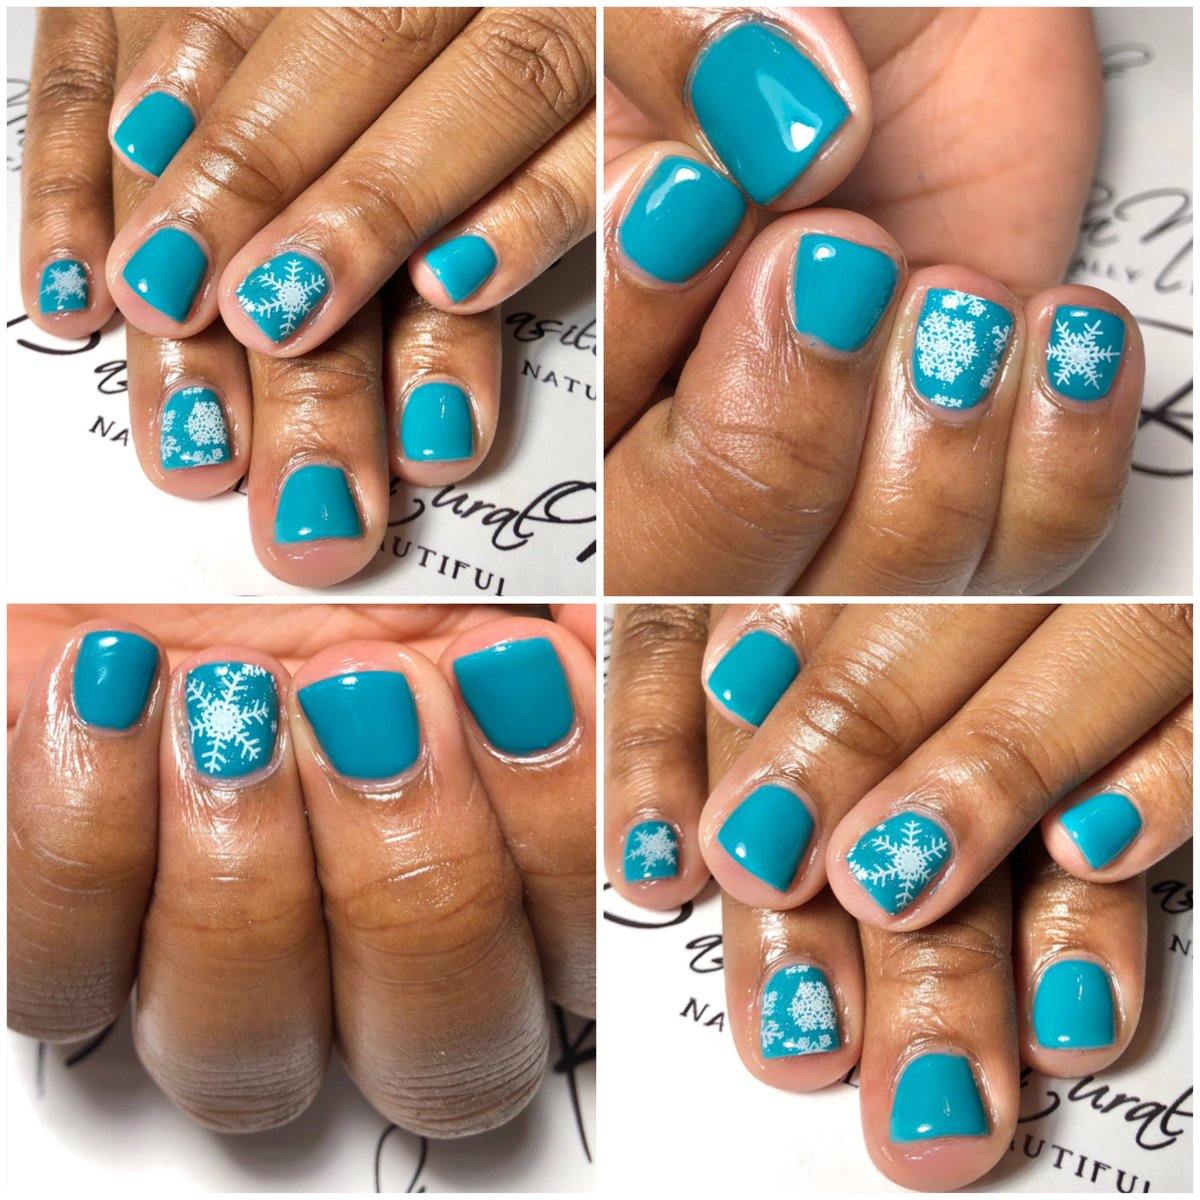 Baby it's cold outside  BNNails of the Day Gel polish manicure designed to perfection!#NEWDesigns pic.twitter.com/vW2NHsI3oZ